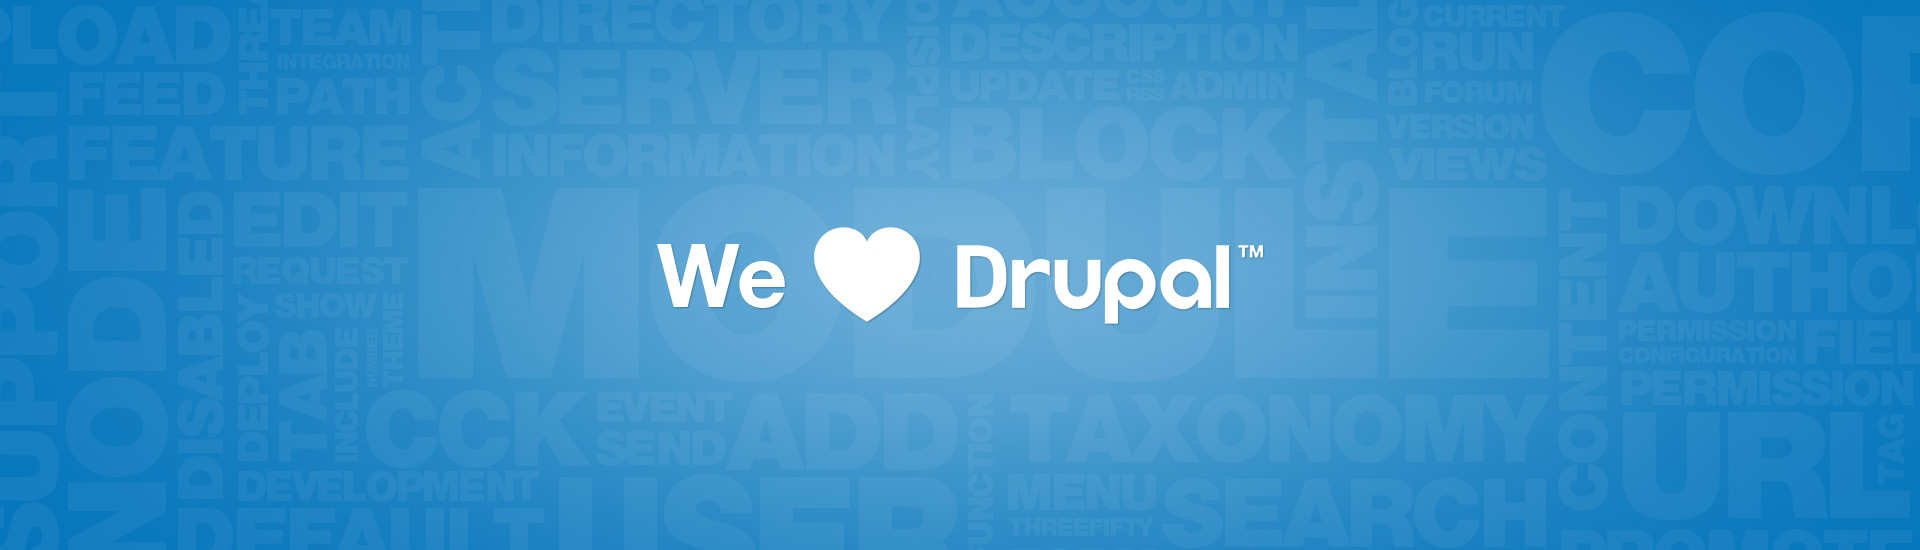 OPTASY Provides FREE Drupal Support to Organizations Involved in COVID-19 Relief Efforts